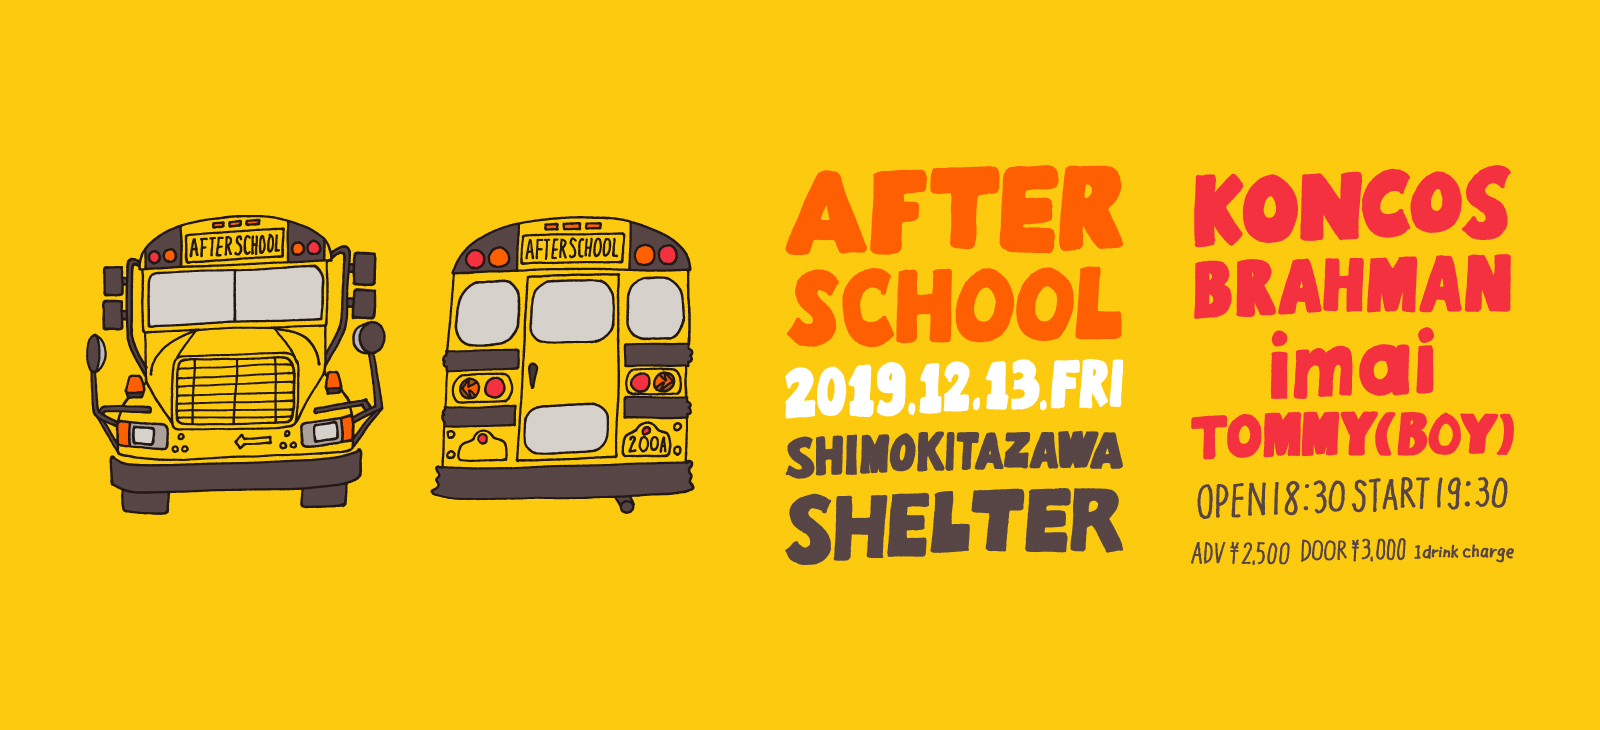 2019.12.13.Fri 下北沢 SHELTER AFTER SCHOOL